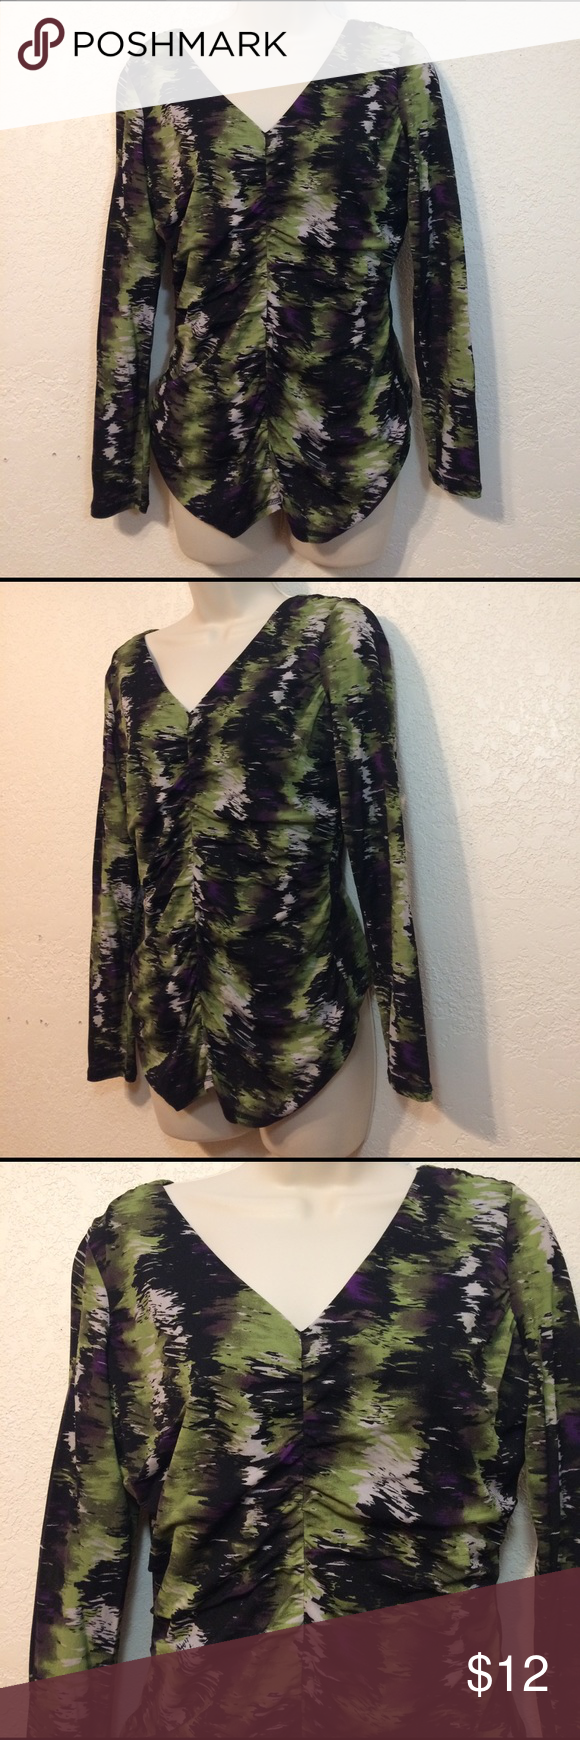 Worthington Ruched v Neck multi colored blouse Med Worthington women's multi colored (green, white, purple & black), VNeck, long sleeve Ruched blouse. Size medium has inner lining layer. Shell 100% Nylon lining 100% Polyester nwot flawless Worthington Tops Blouses